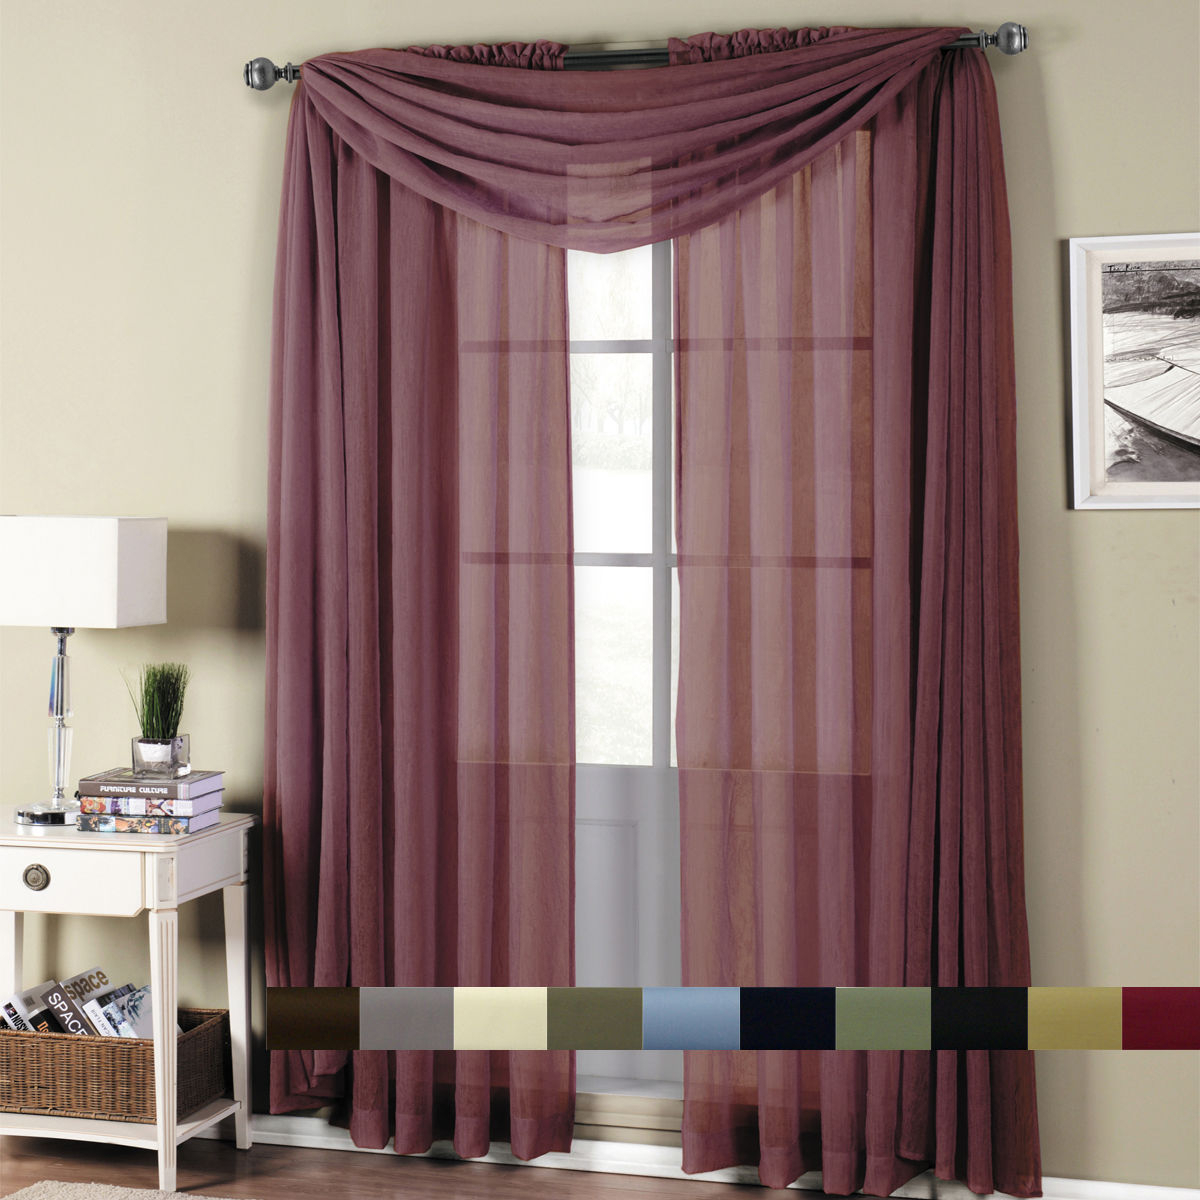 Abri Rod Pocket Crushed Sheer Window Curtain Panels Or Scarf, Beautiful Decor With Regard To Infinity Sheer Rod Pocket Curtain Panels (View 1 of 20)